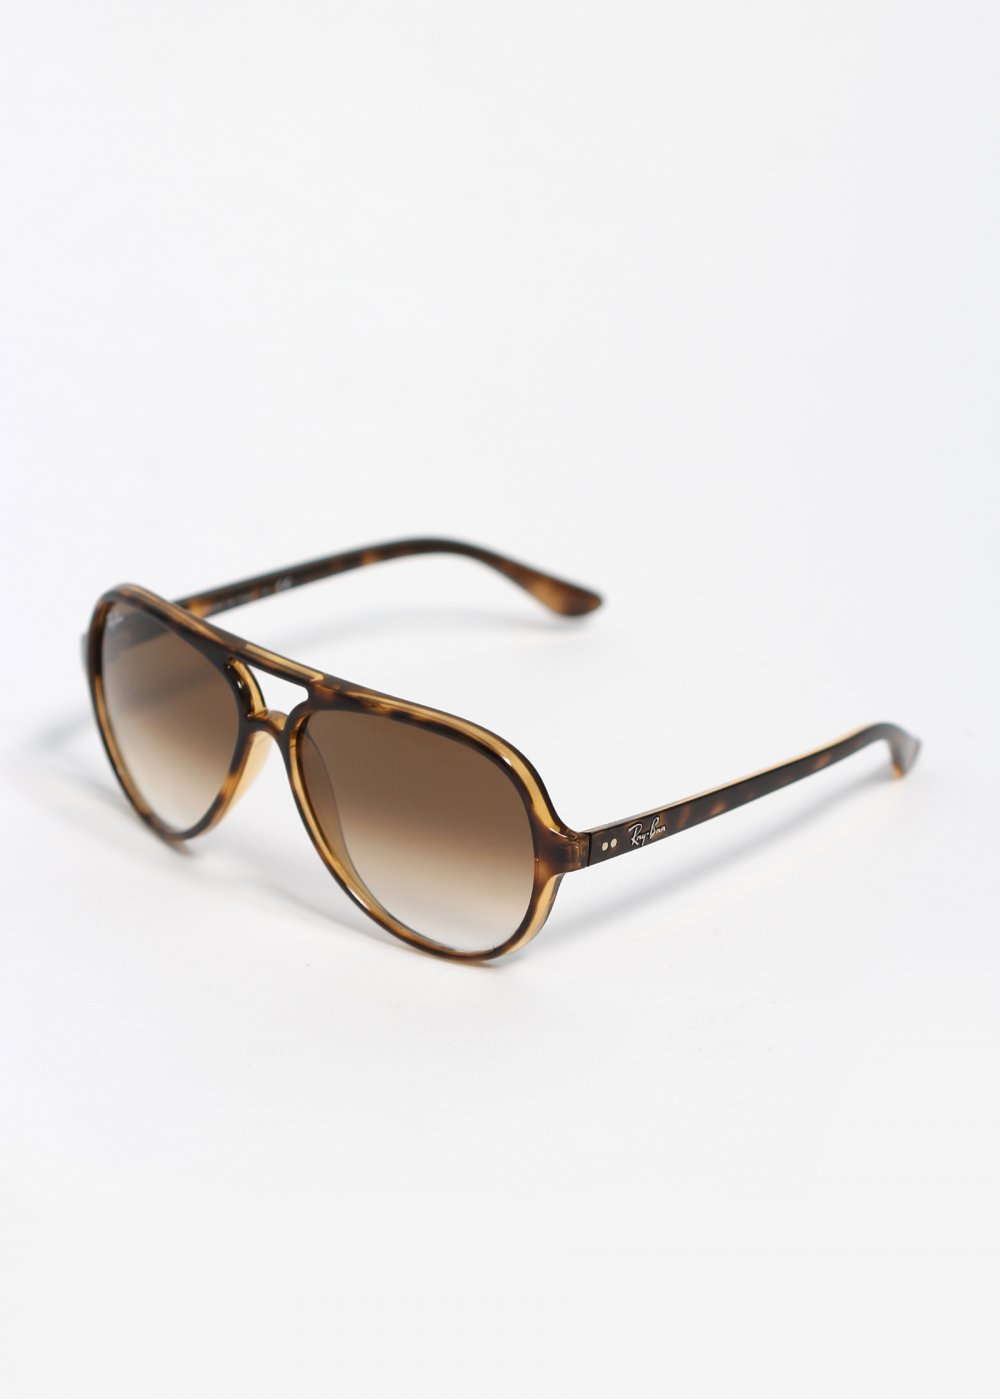 Ray Ban Small Frame Glasses : Ray Ban Aviator Small Frames From Italy - Highgate Park